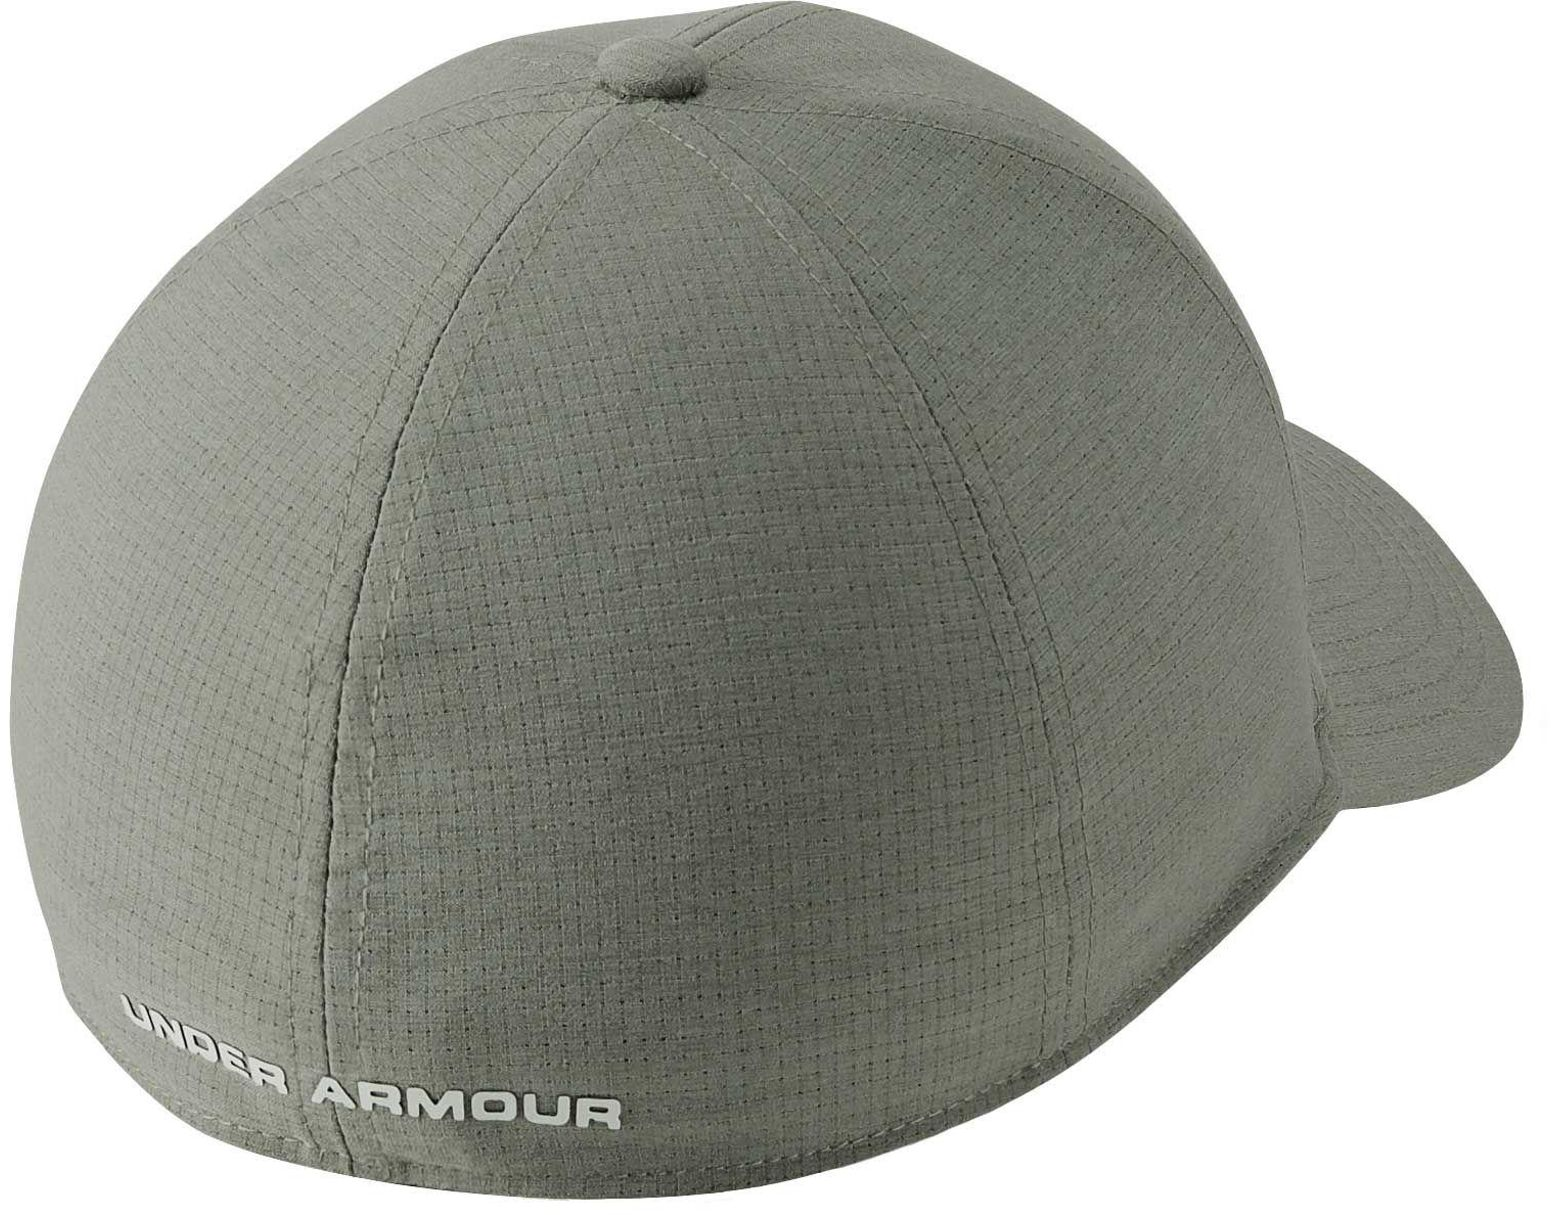 online retailer a65c7 641db Under Armour Coolswitch Armourvent Fishing Hat in Green for Men - Lyst